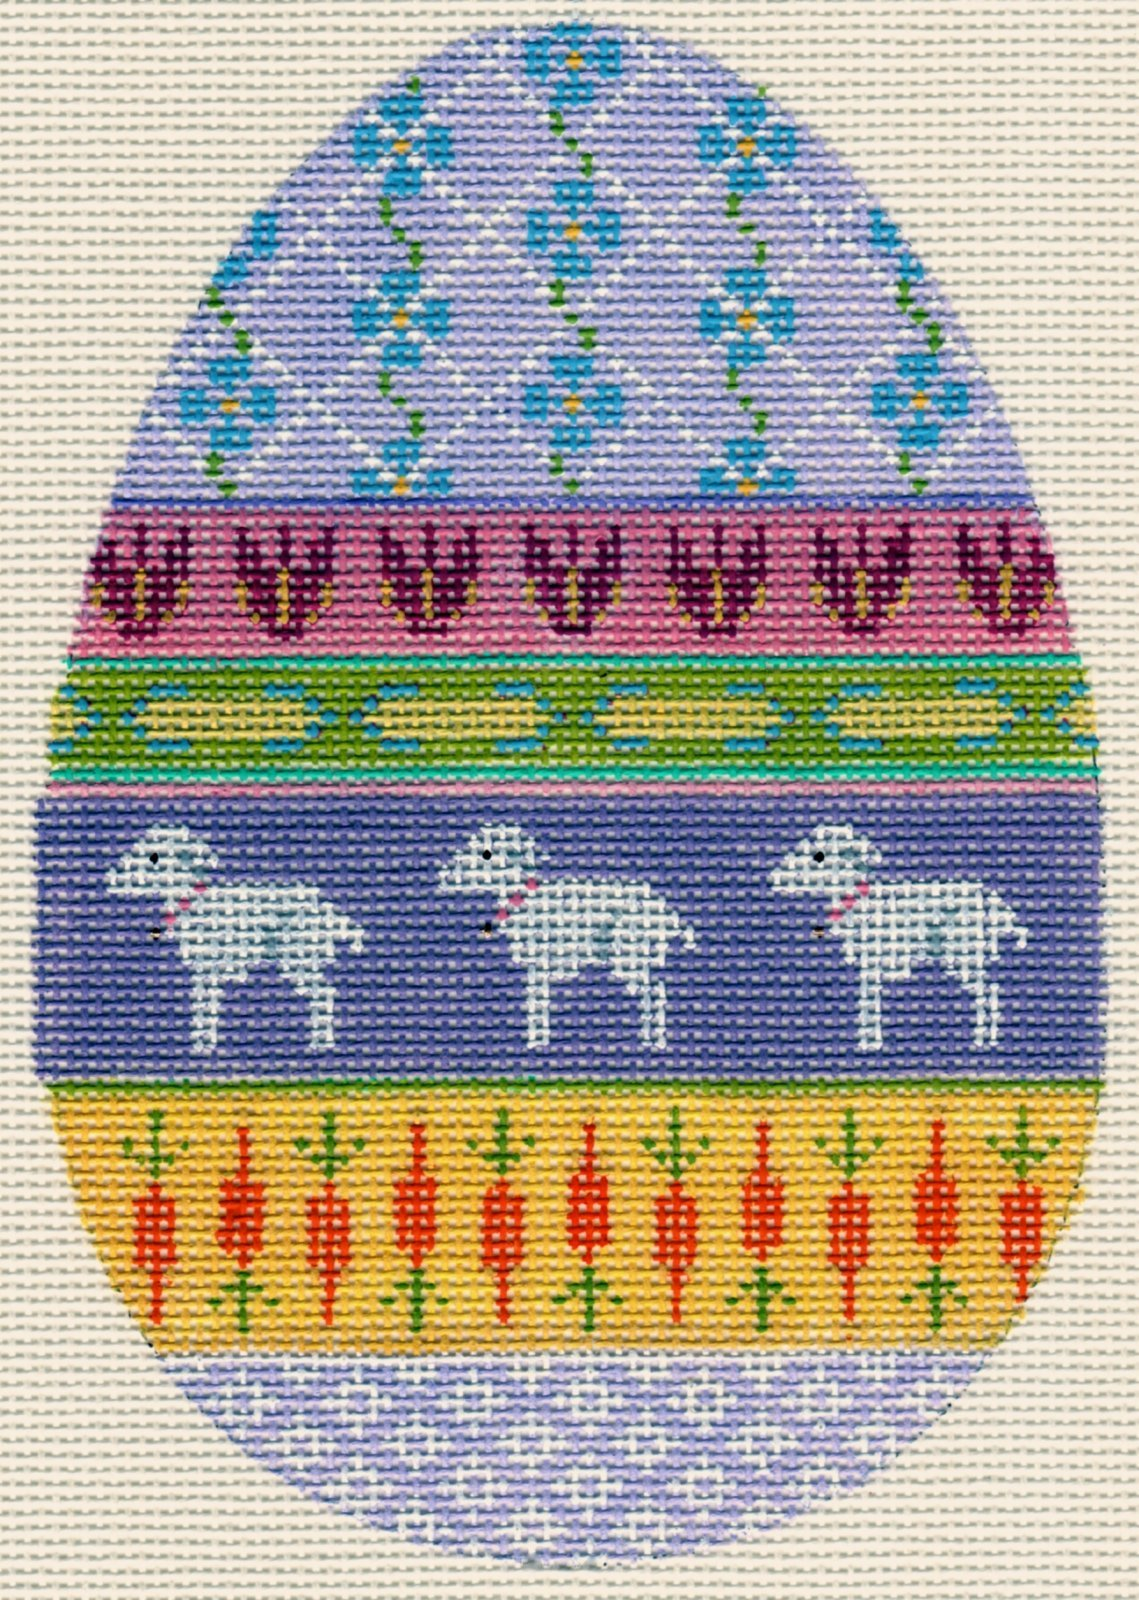 Easter Egg with Lambs